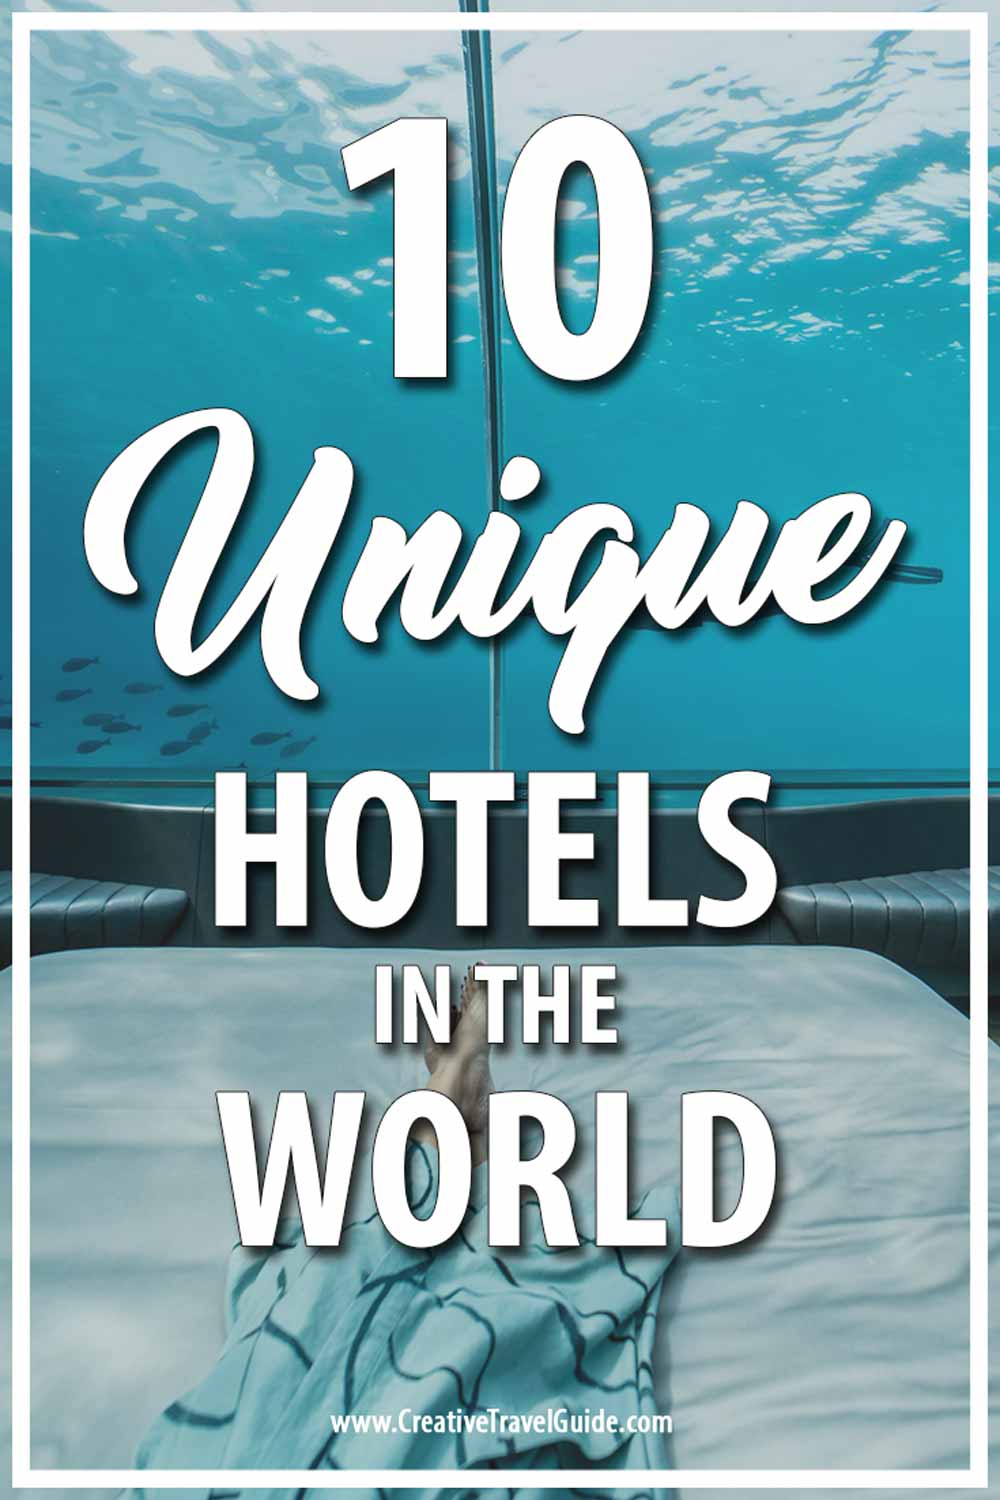 Unique hotels in the world